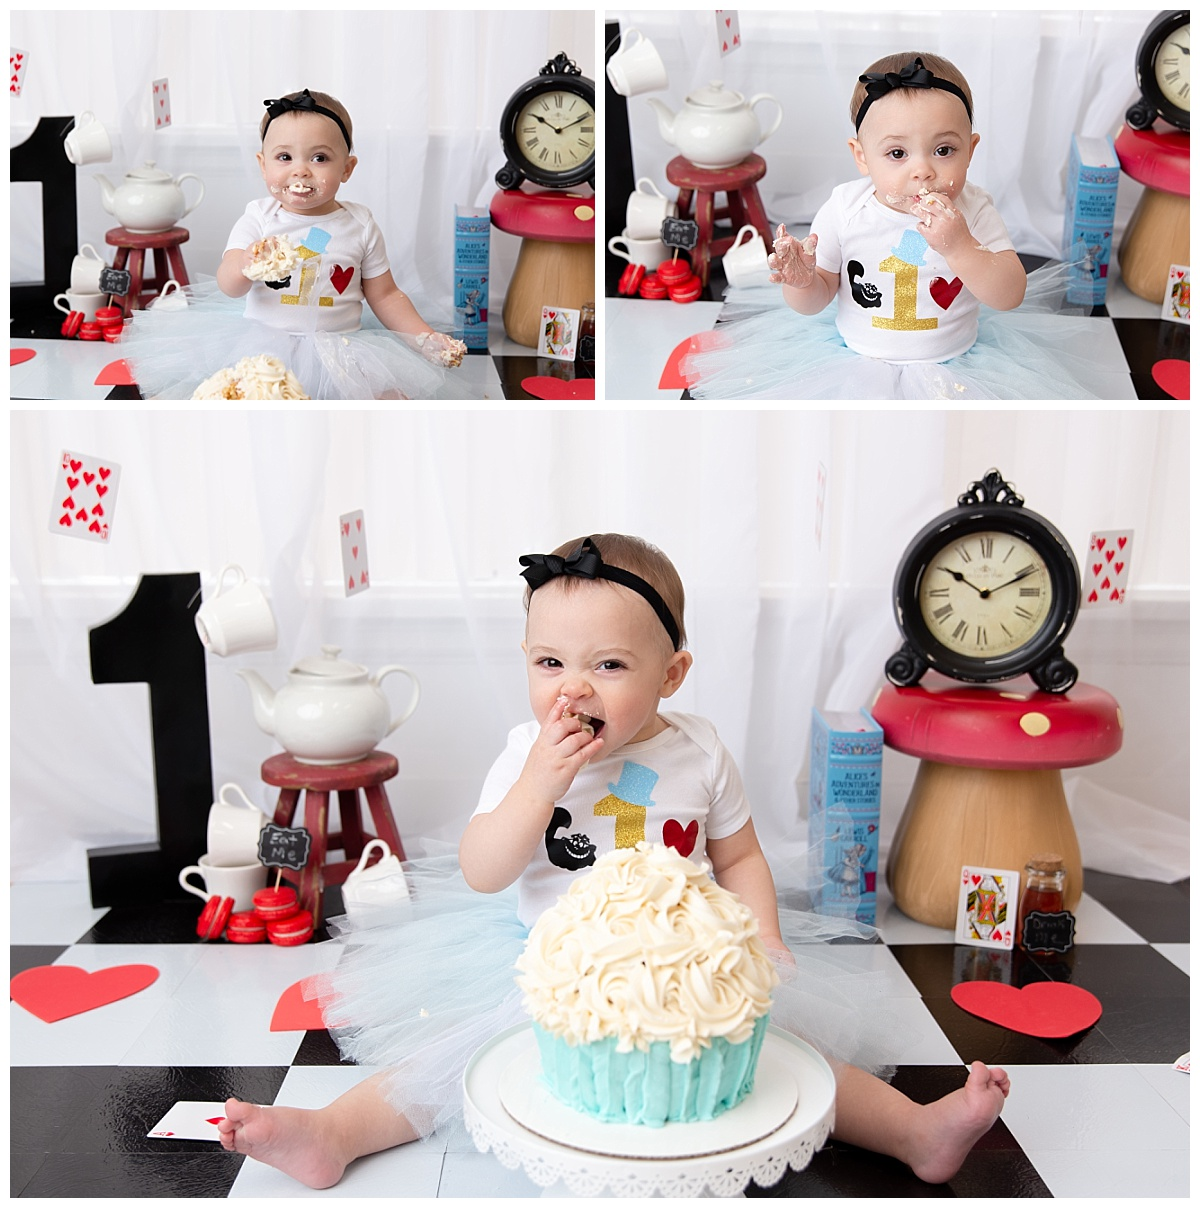 st-louis-cake-smash-photographer-alice-in-wonderland-cake-smash-baby-girl-collage-eating-cake.jpg